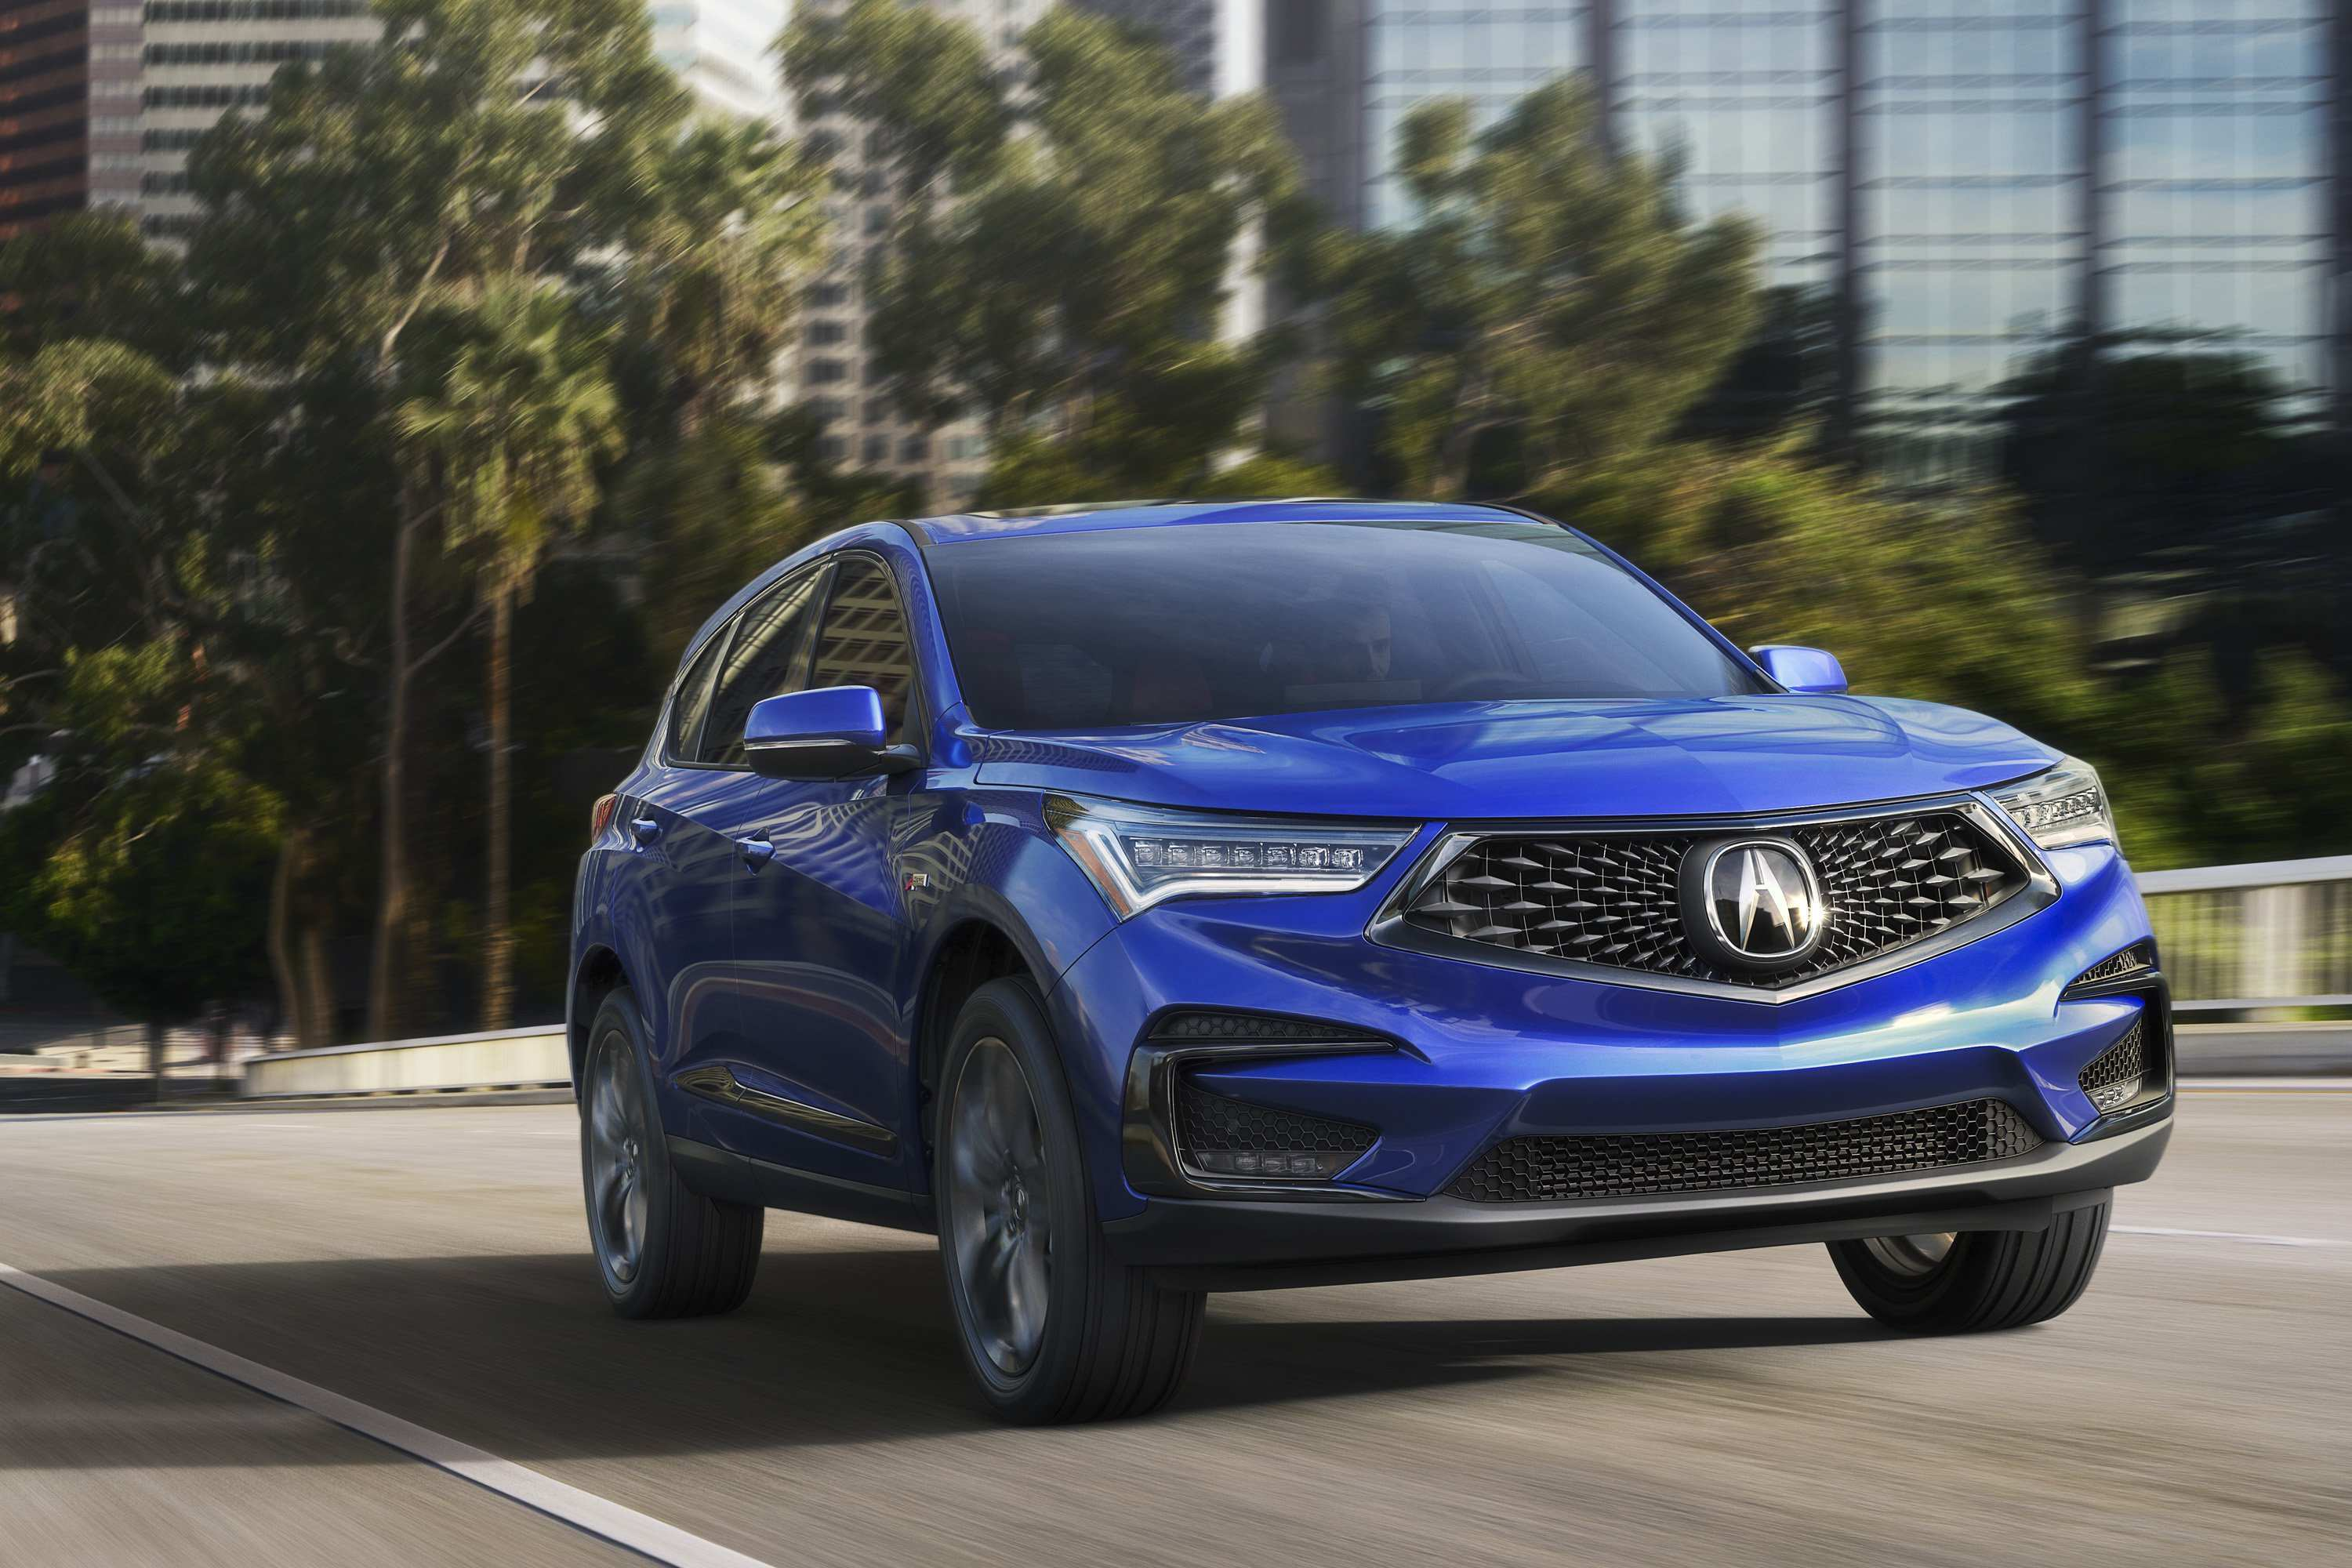 18 All New New Acura Mdx 2019 Updates First Drive Rumors with New Acura Mdx 2019 Updates First Drive